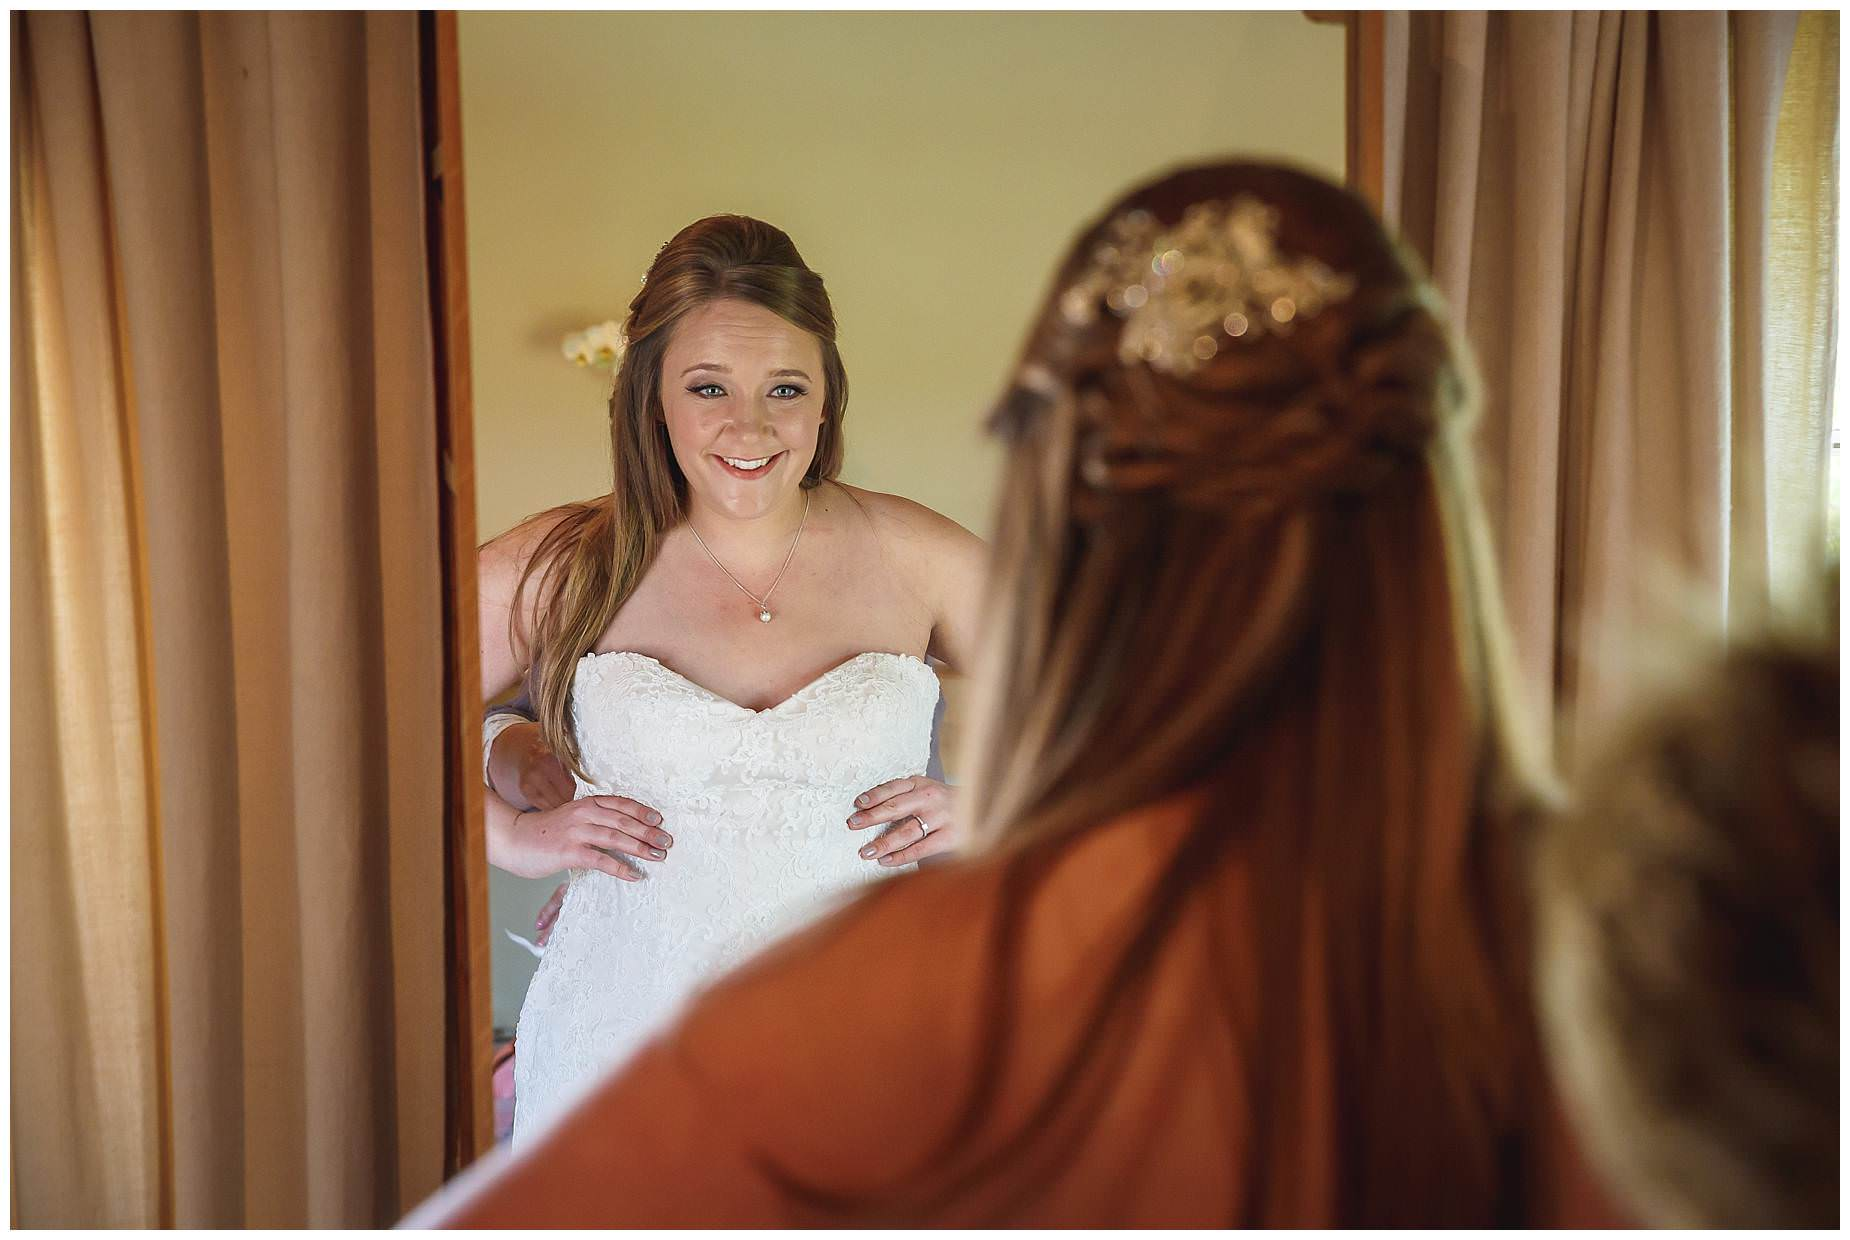 Bride getting dressed at Bury Court Barn Wedding